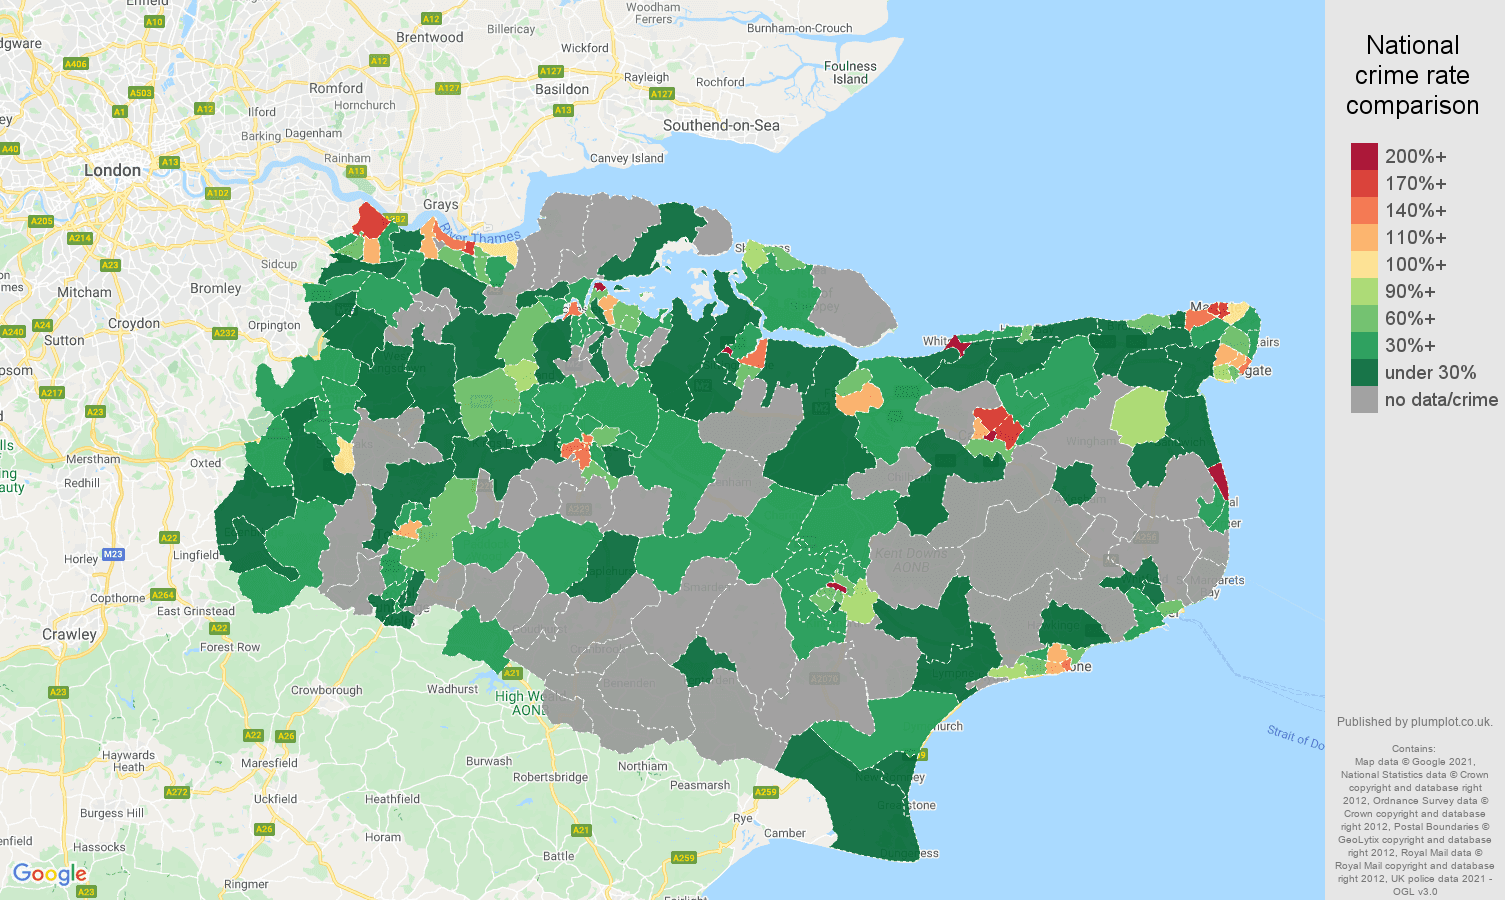 Kent bicycle theft crime rate comparison map